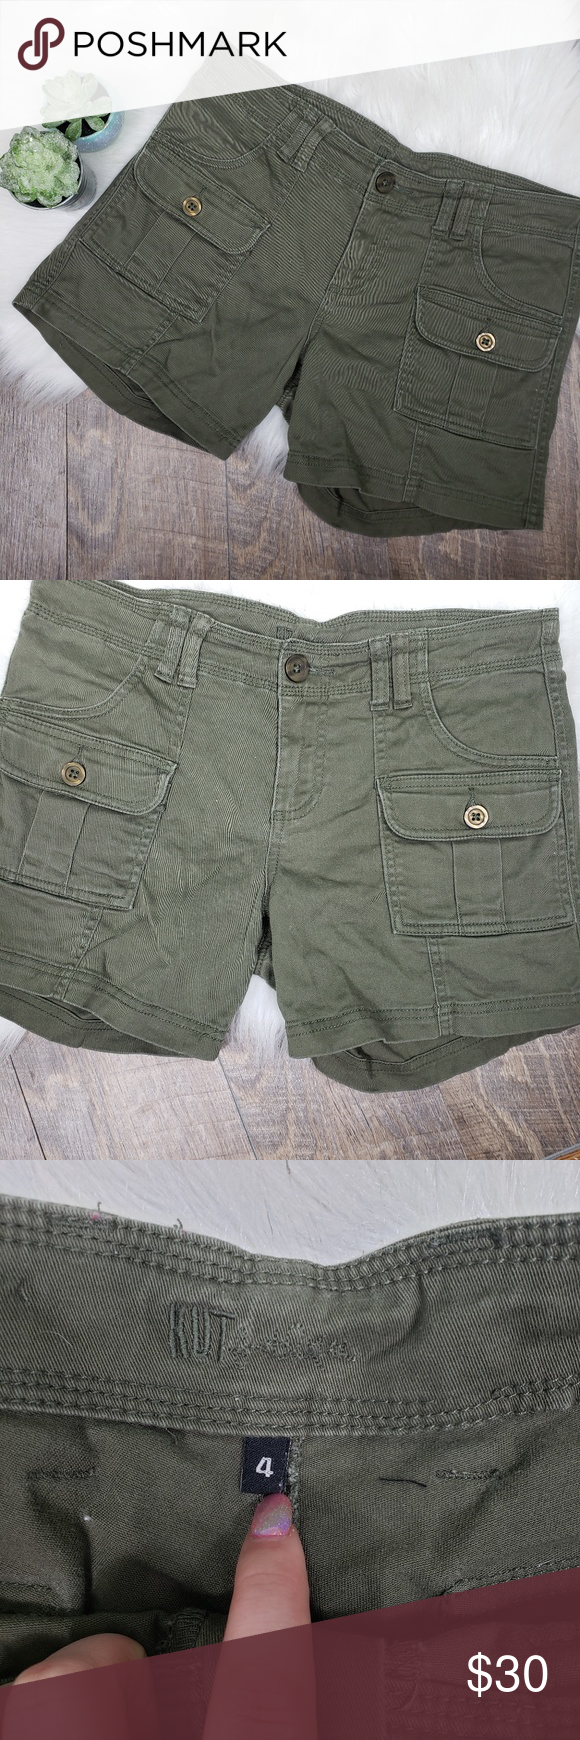 cffad590b8 Kut from the kloth cargo shorts Excellent condition. Cargo shorts. Army  green. Size